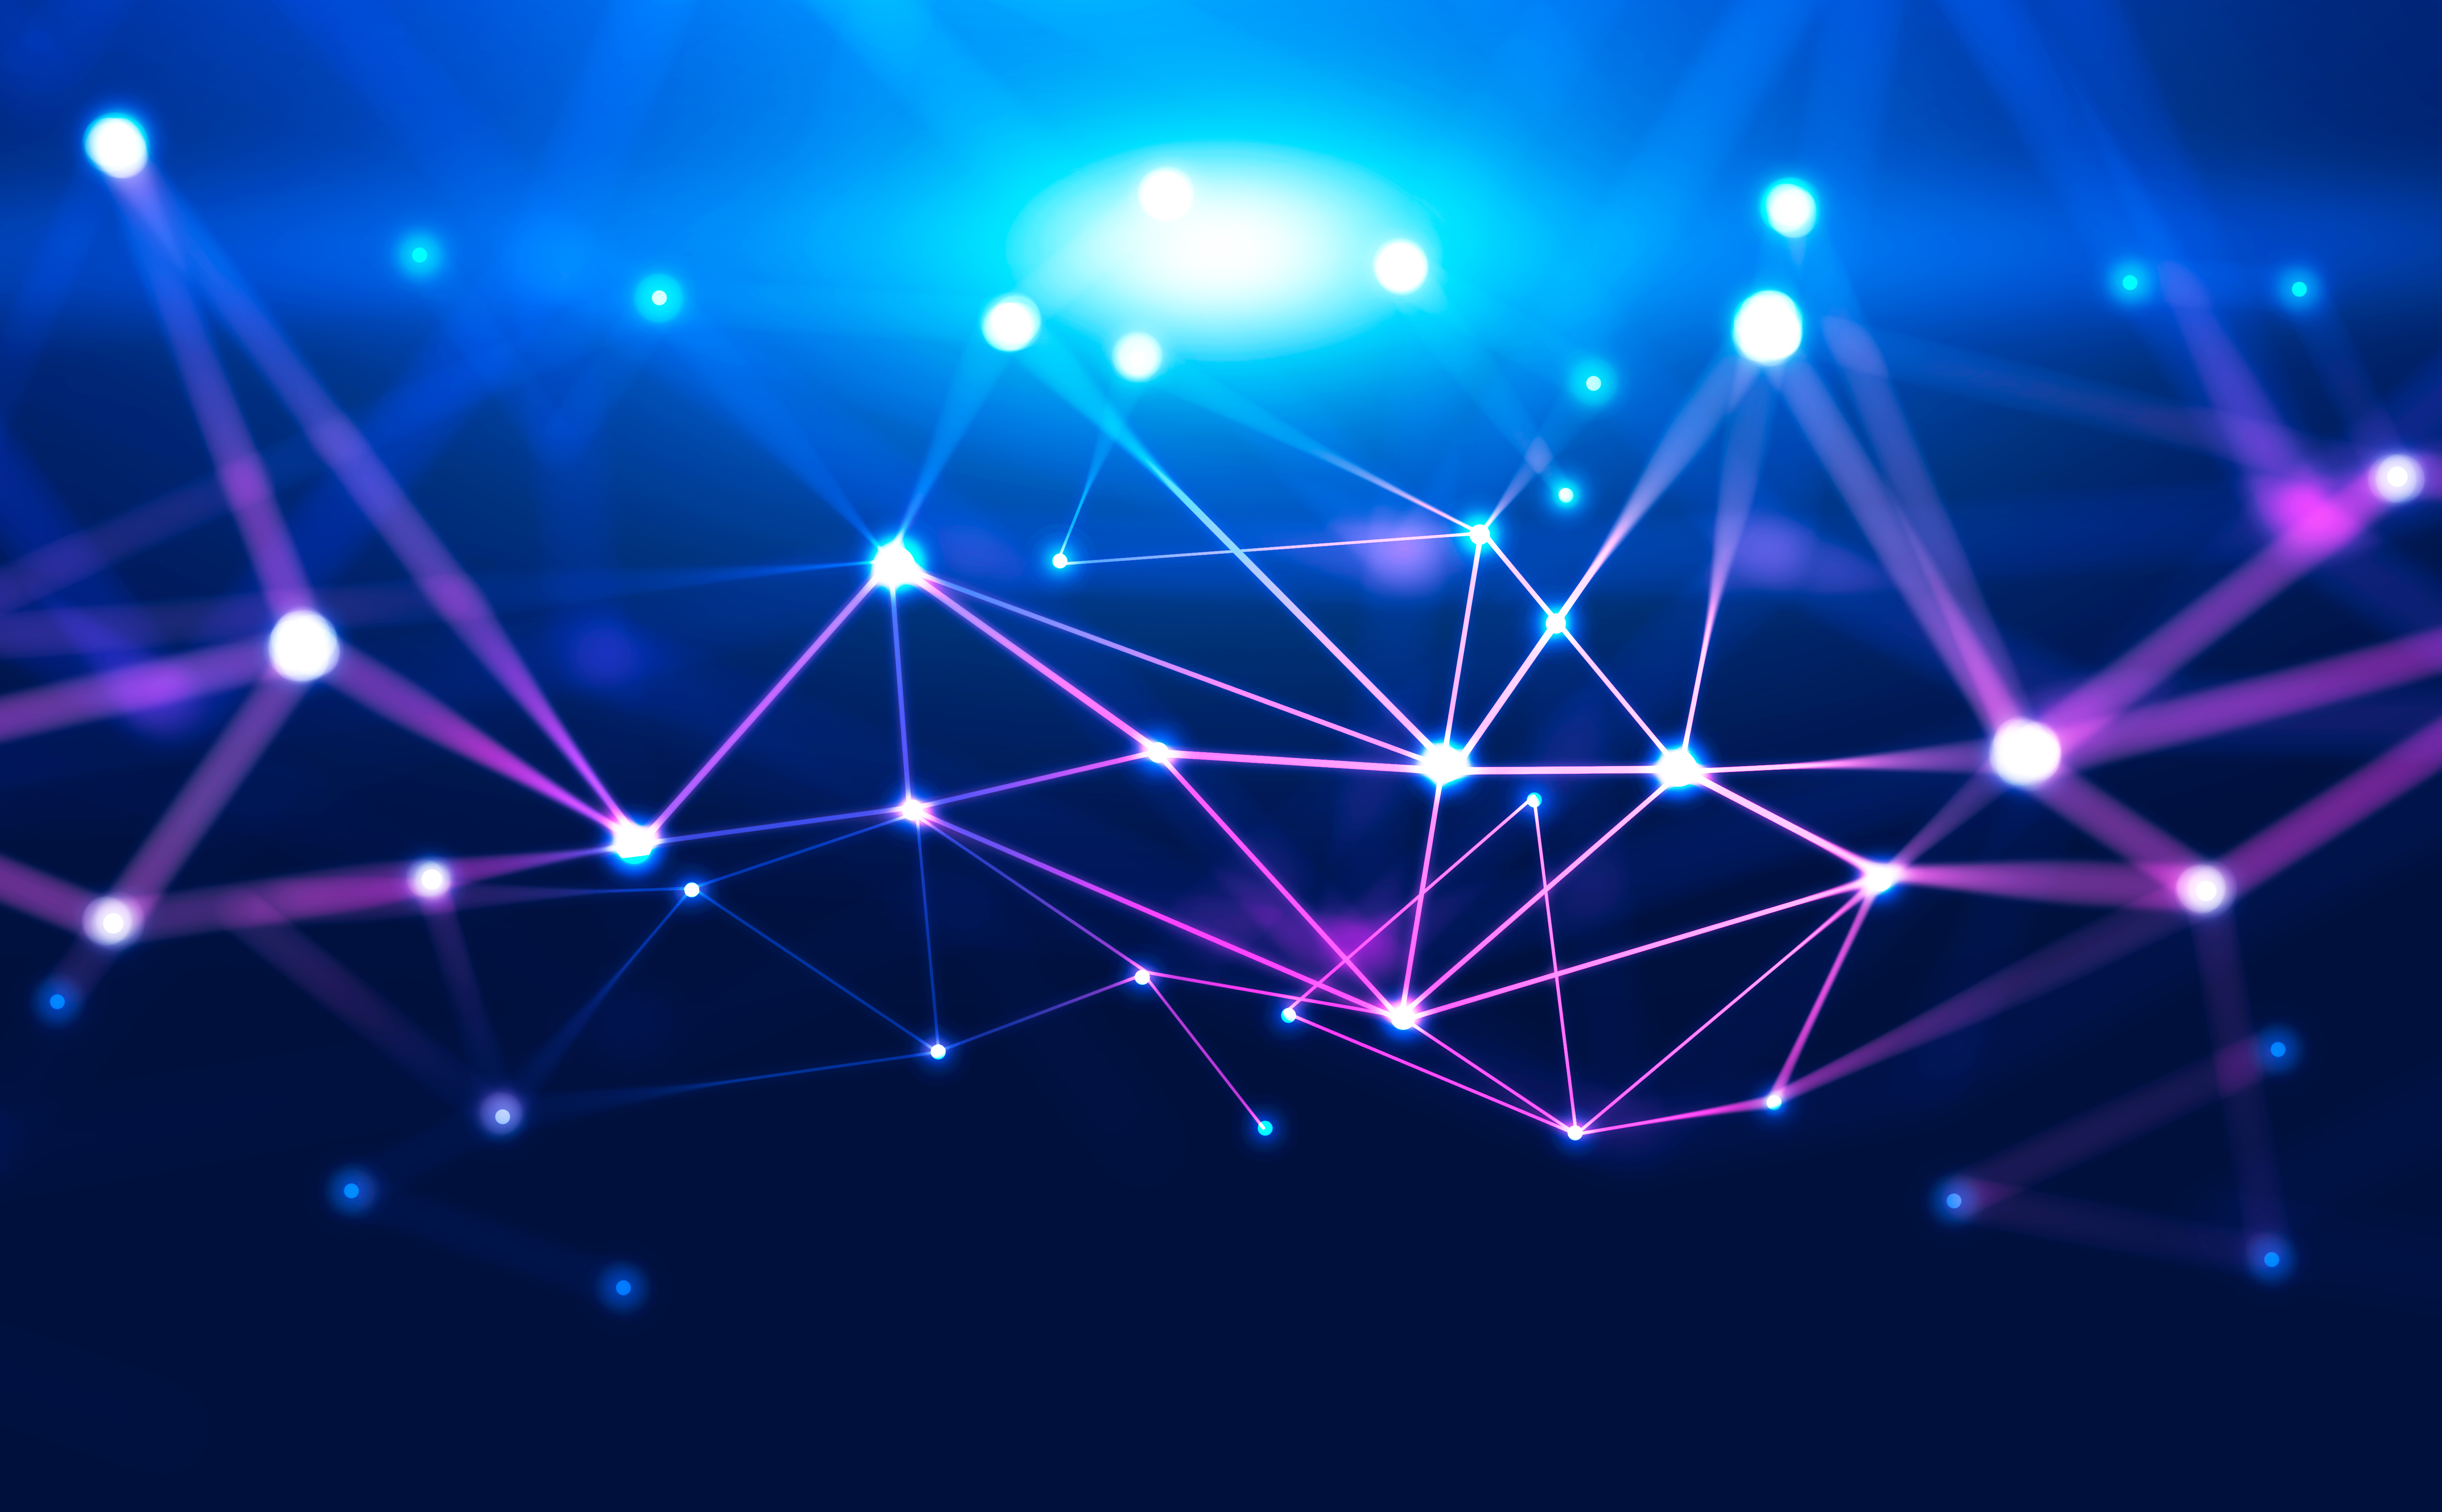 Abstract background with glowing purple and blue connection dots over dark blue. Concept of digital technology and blockchain. 3d rendering